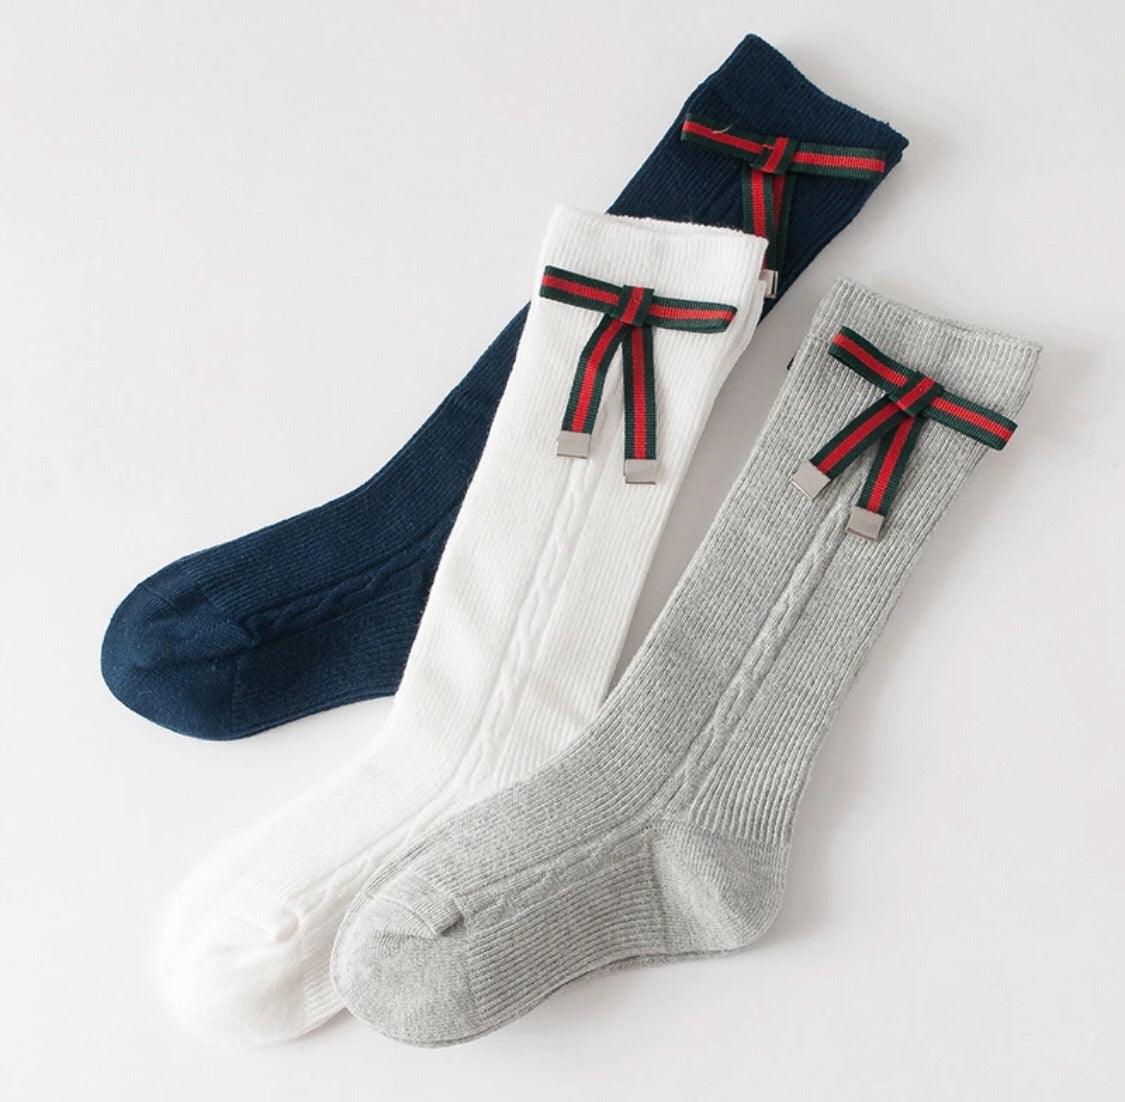 Ribbon socks